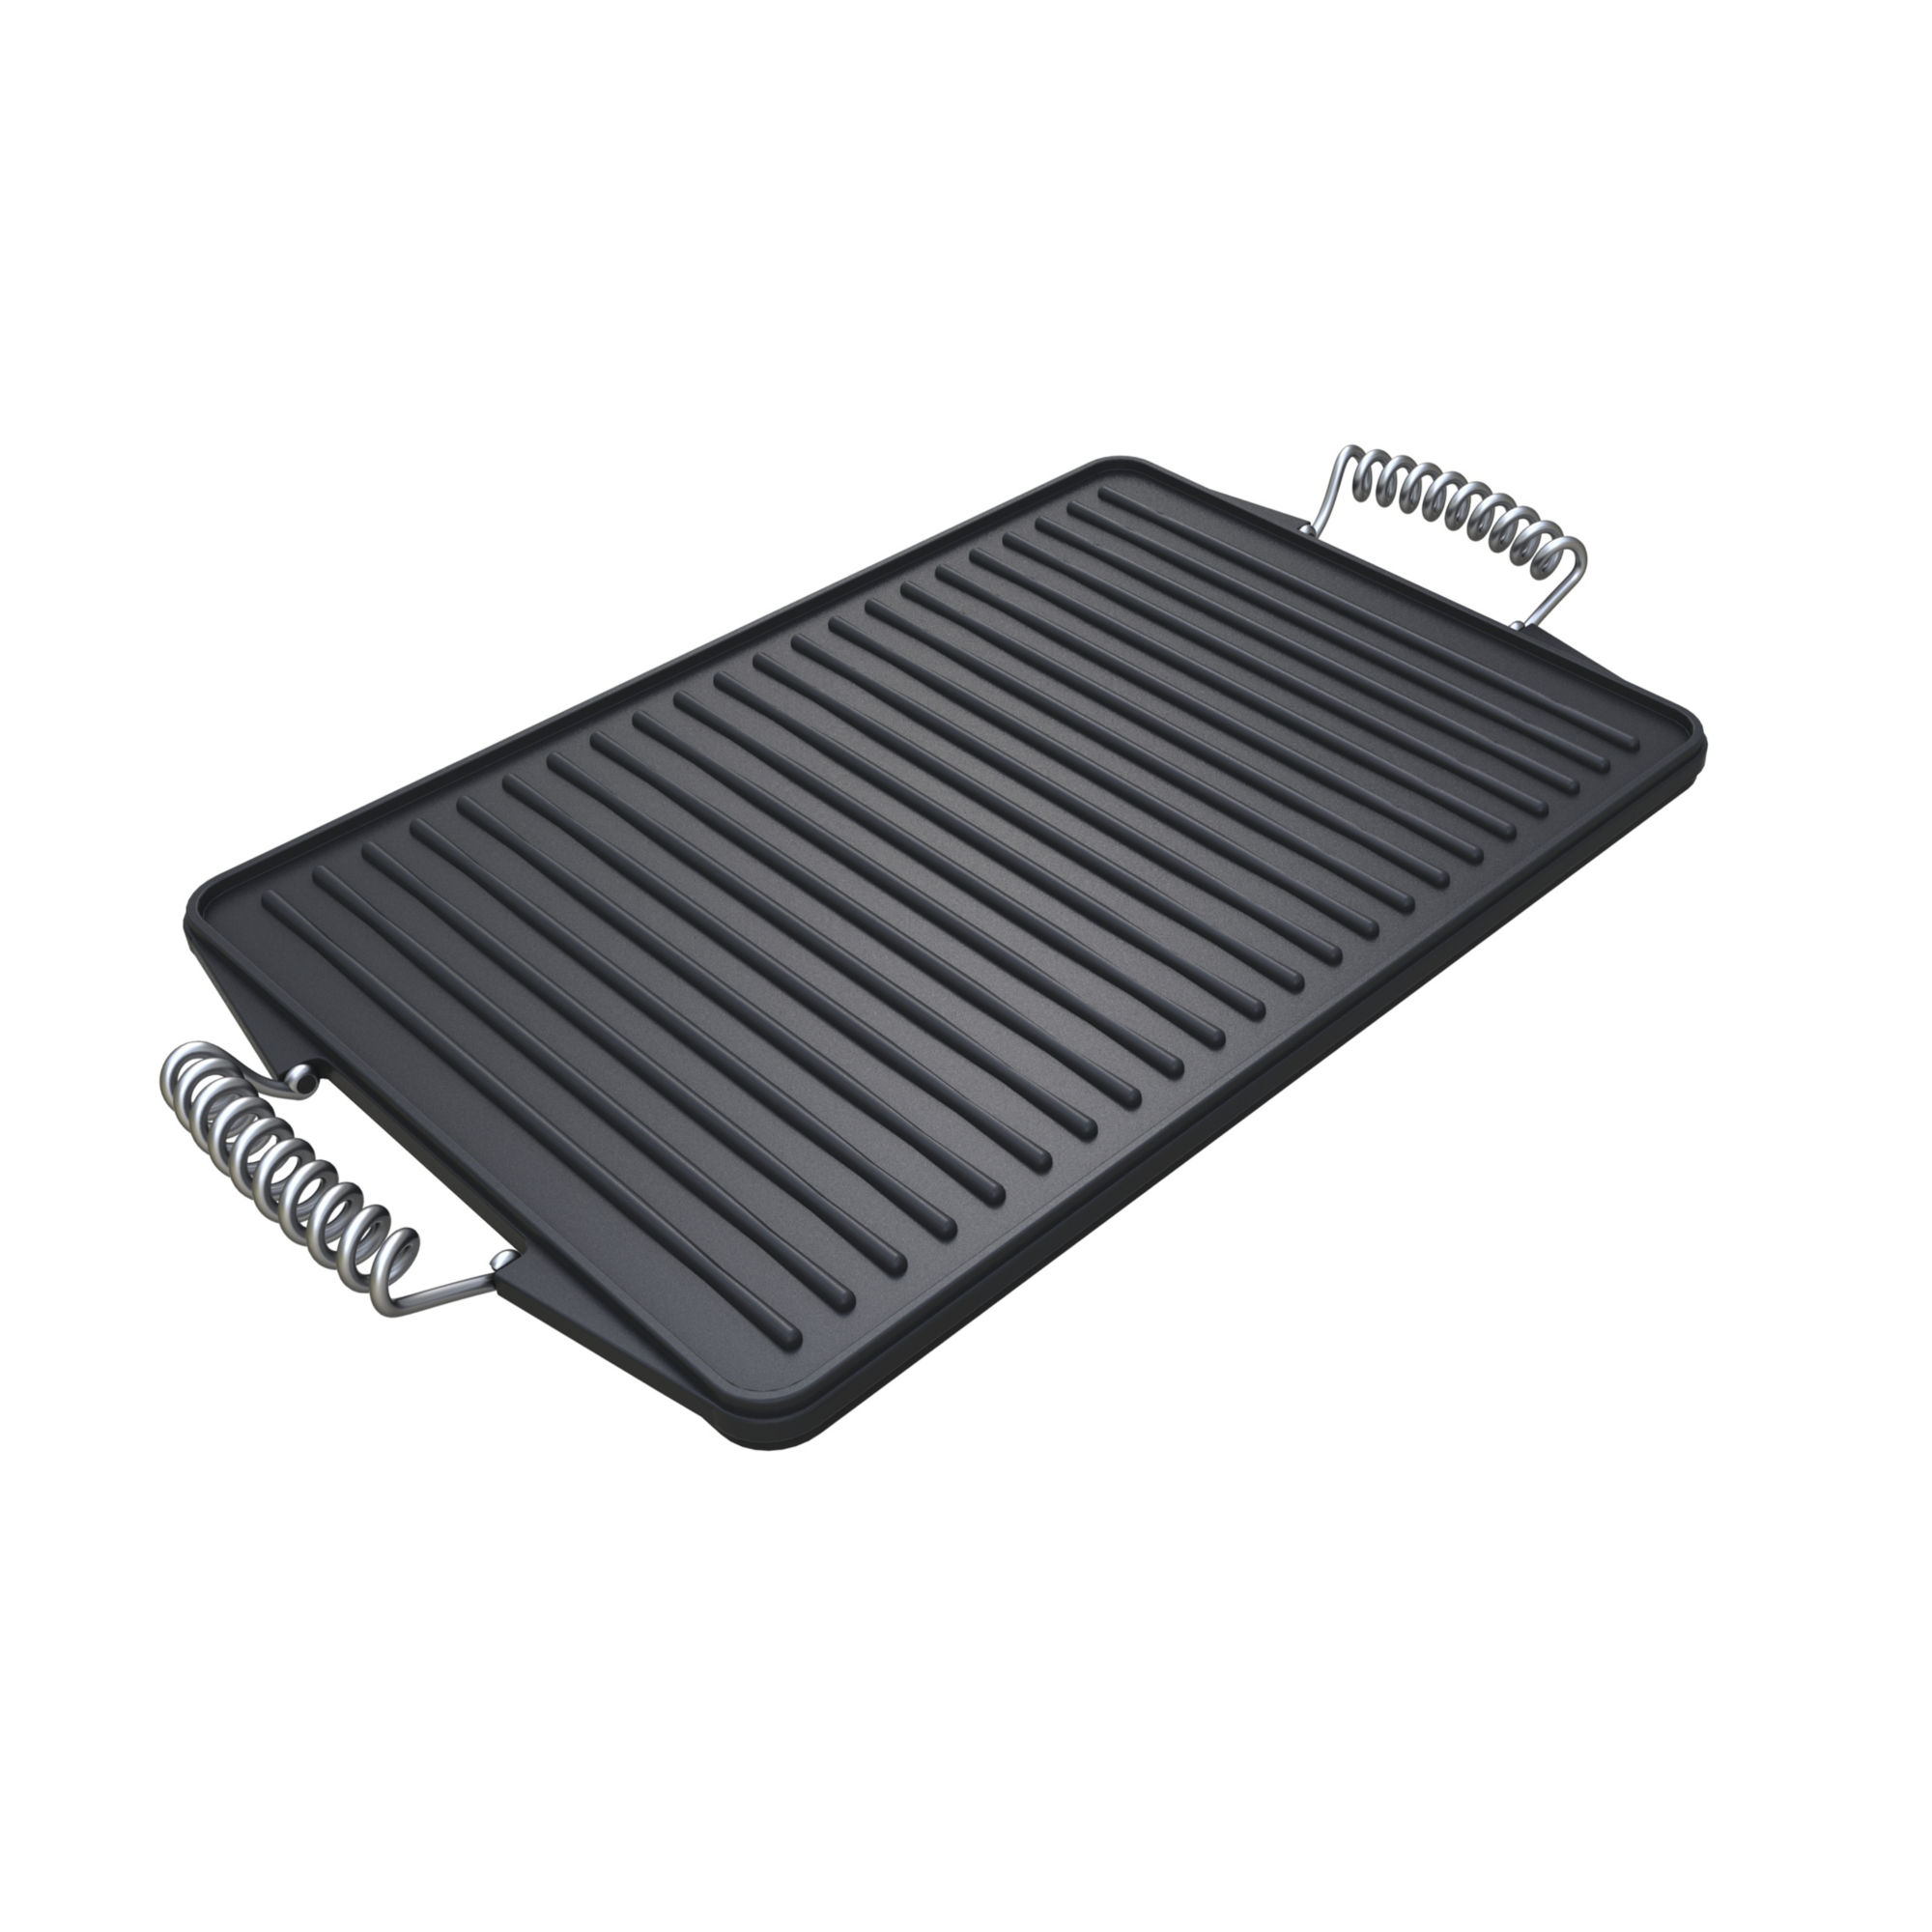 Gourmet Barbecue Reversible Cast Iron Griddle